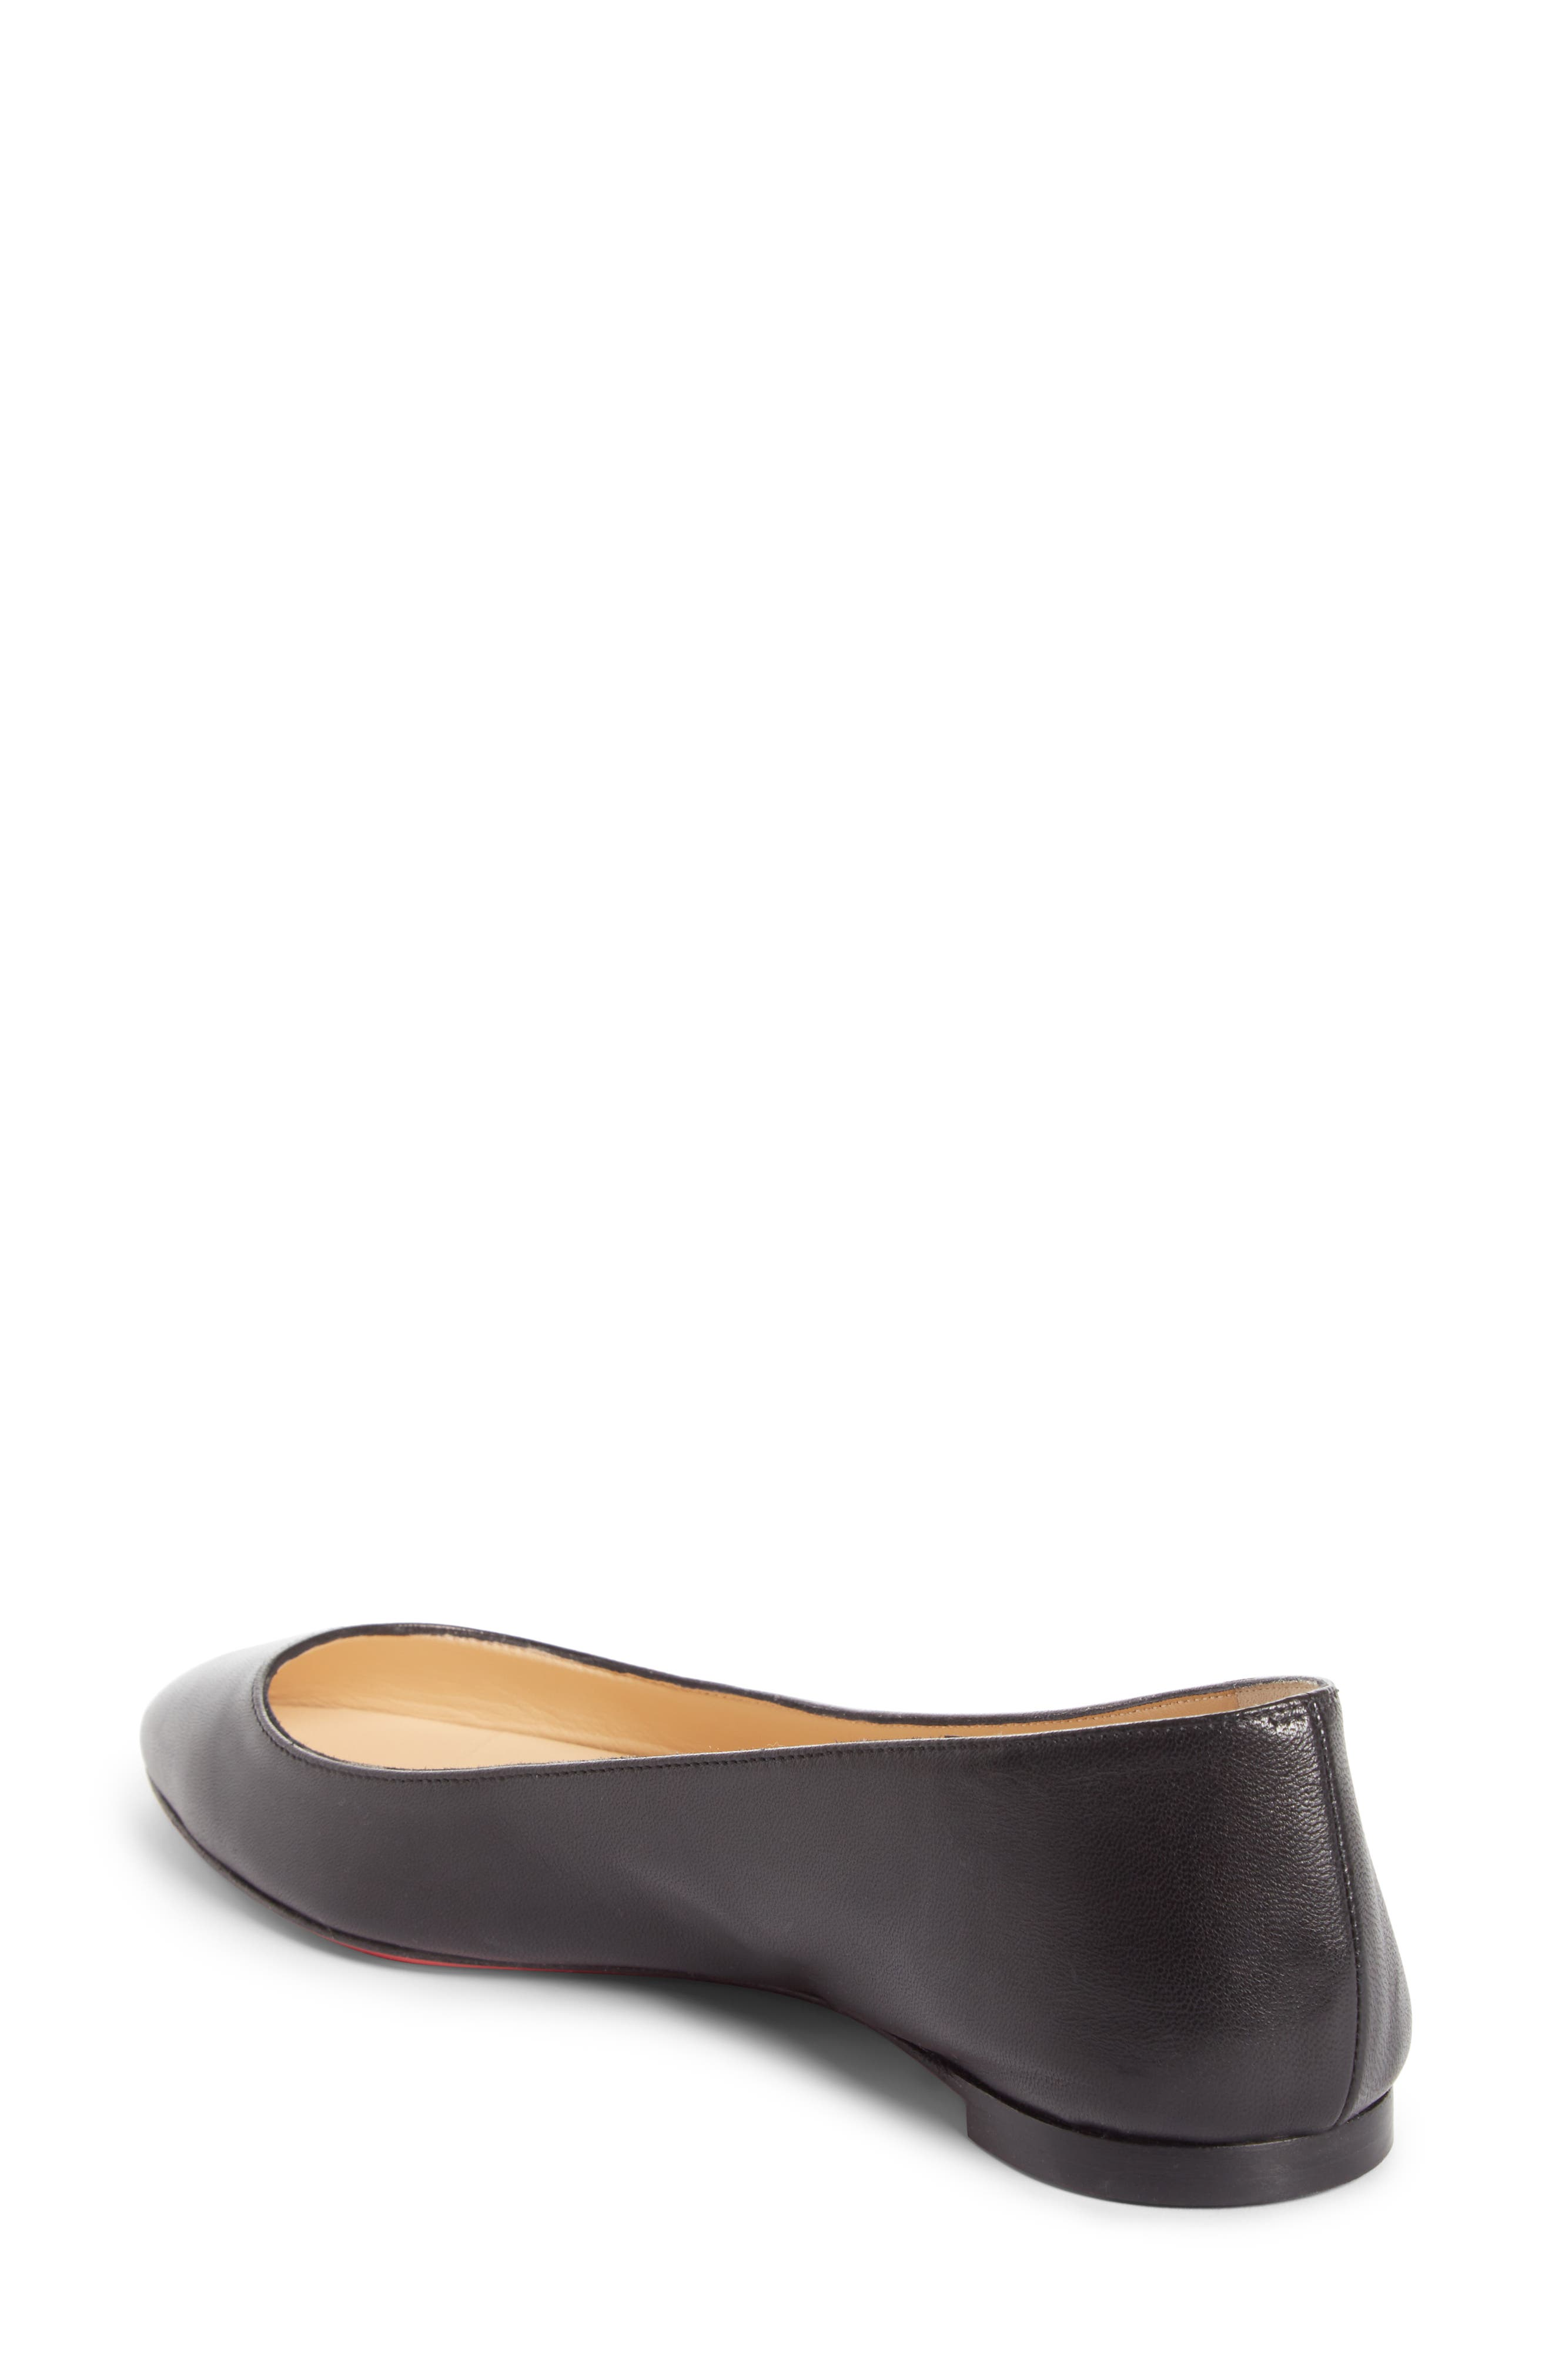 Eloise Flat,                             Alternate thumbnail 2, color,                             BLACK LEATHER